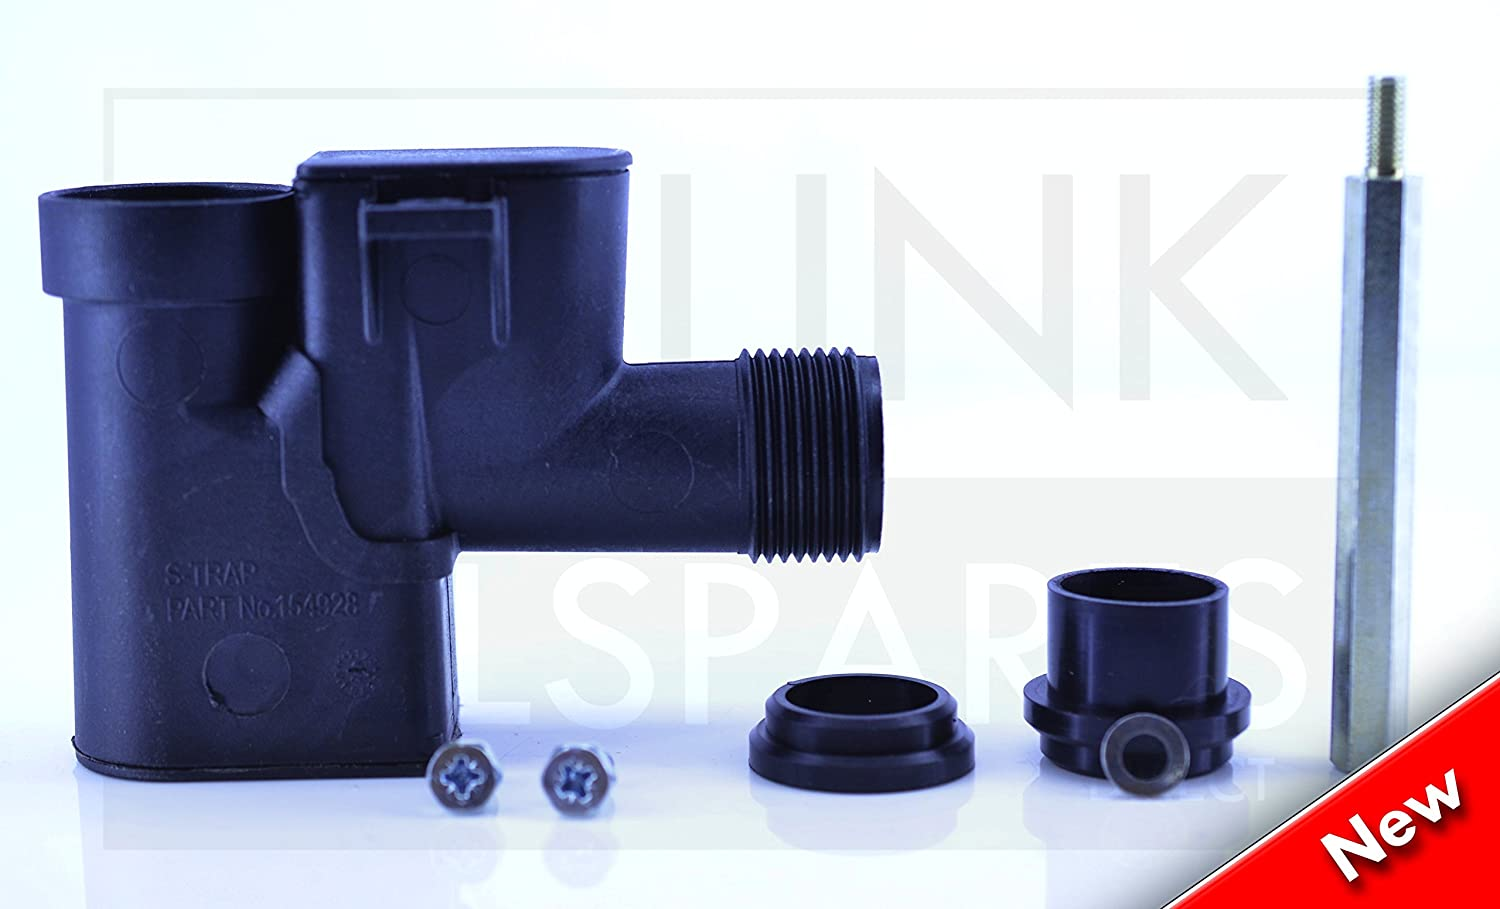 IDEAL ESPRIT 2 24HE 30HE 35HE BOILER CONDENSATE S TRAP & SEAL KIT 174244